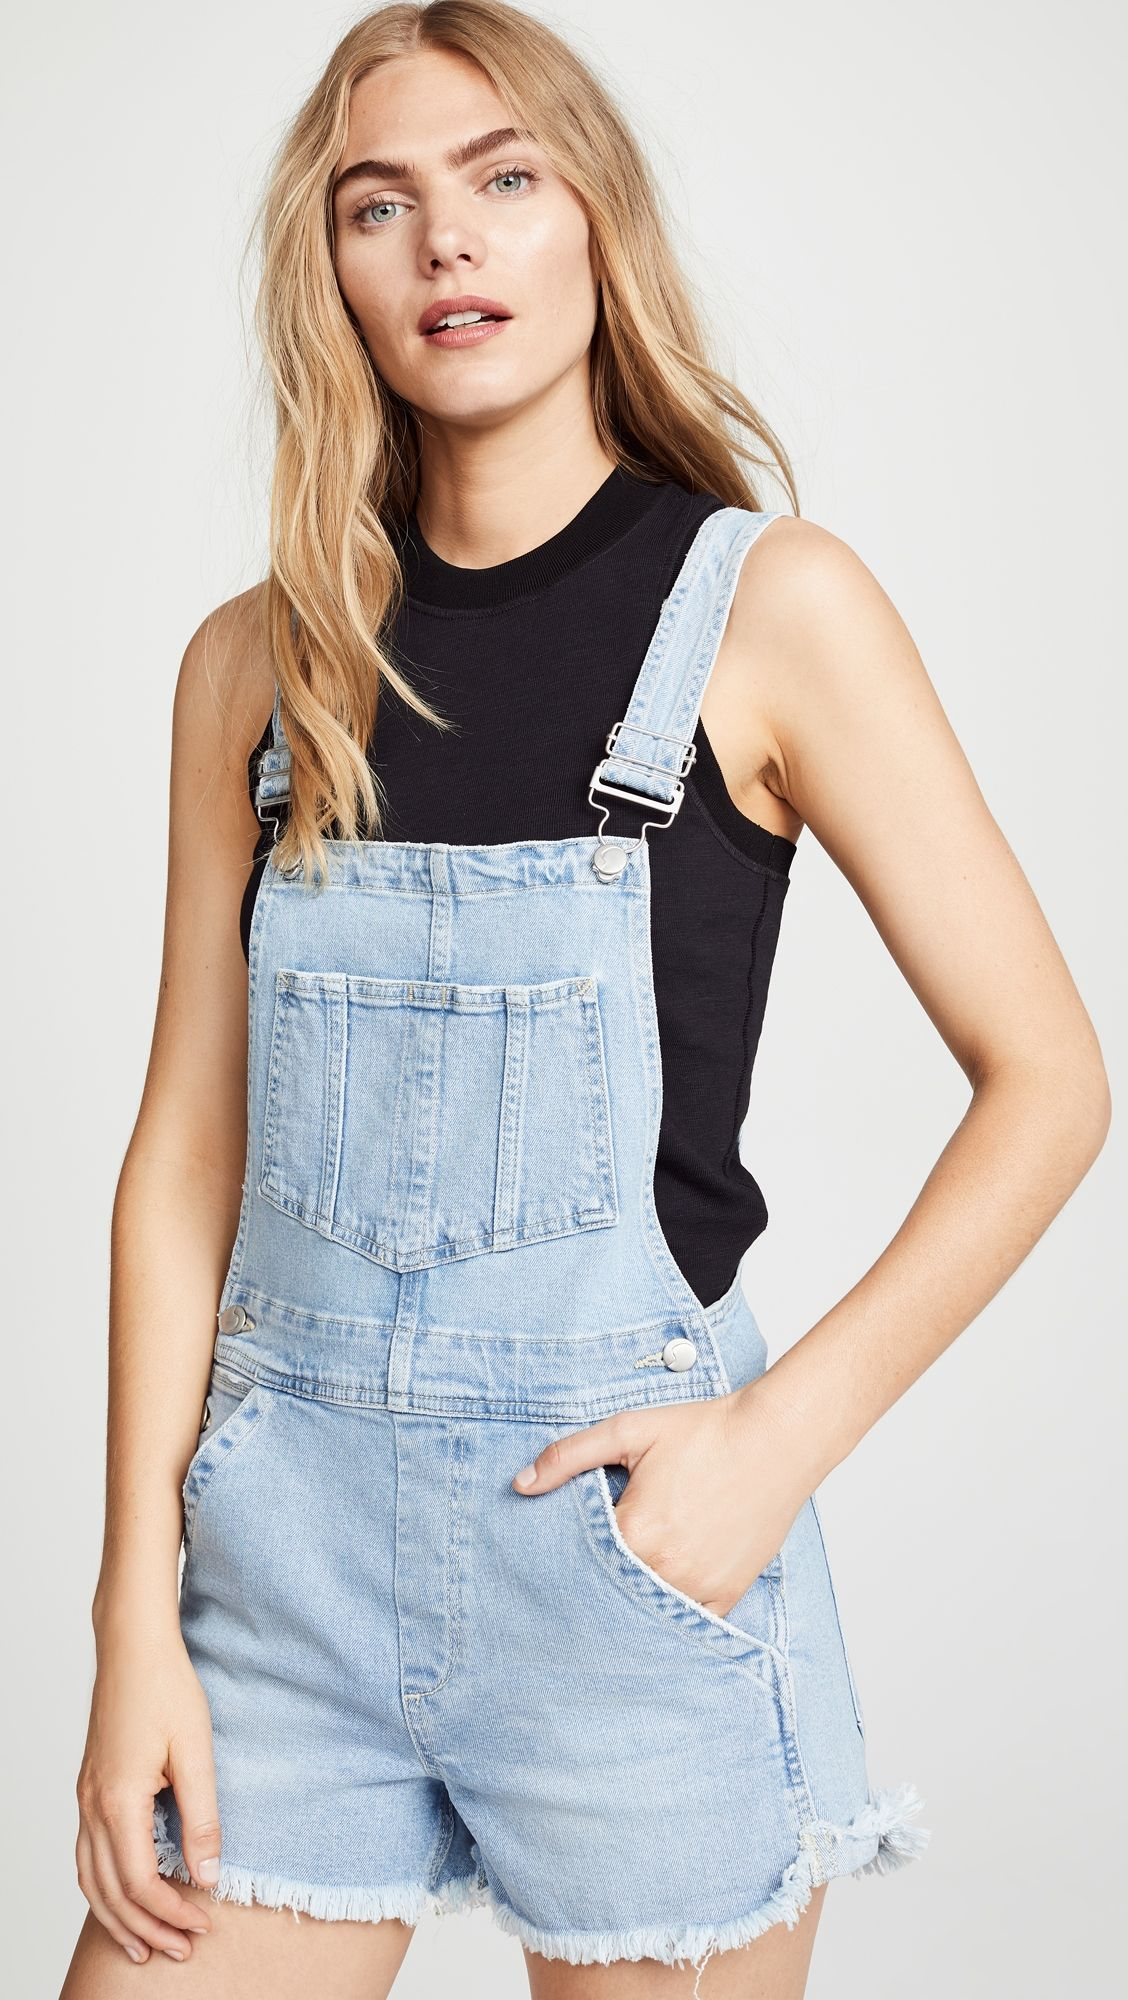 eb6508f8146d Kellsie Short Overalls | Products | Overall shorts, Jean short ...